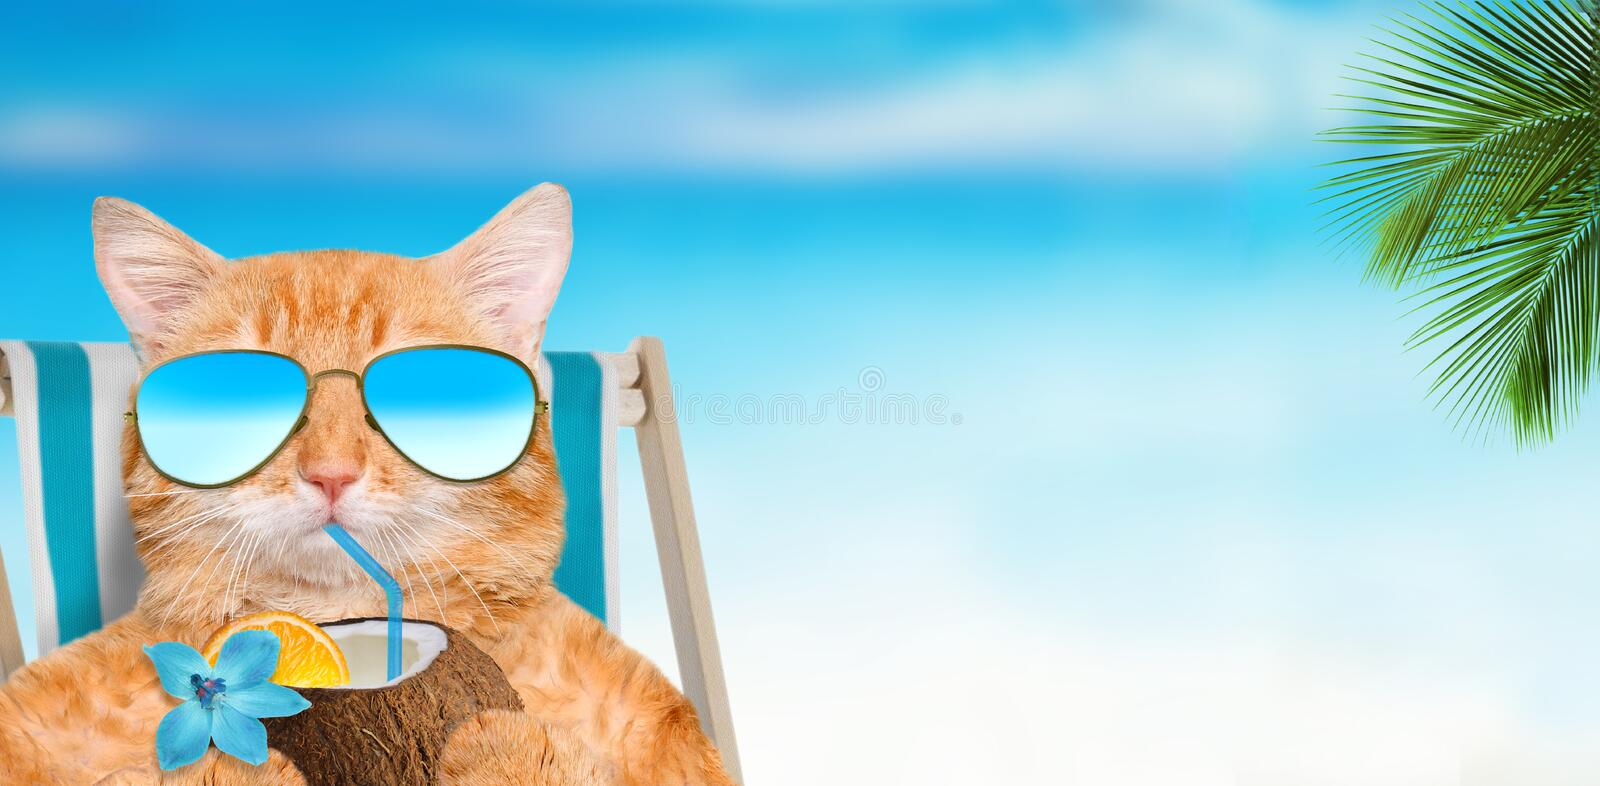 Cat wearing sunglasses relaxing sitting on deckchair . Cat wearing sunglasses relaxing sitting on deckchair in the sea background royalty free stock image